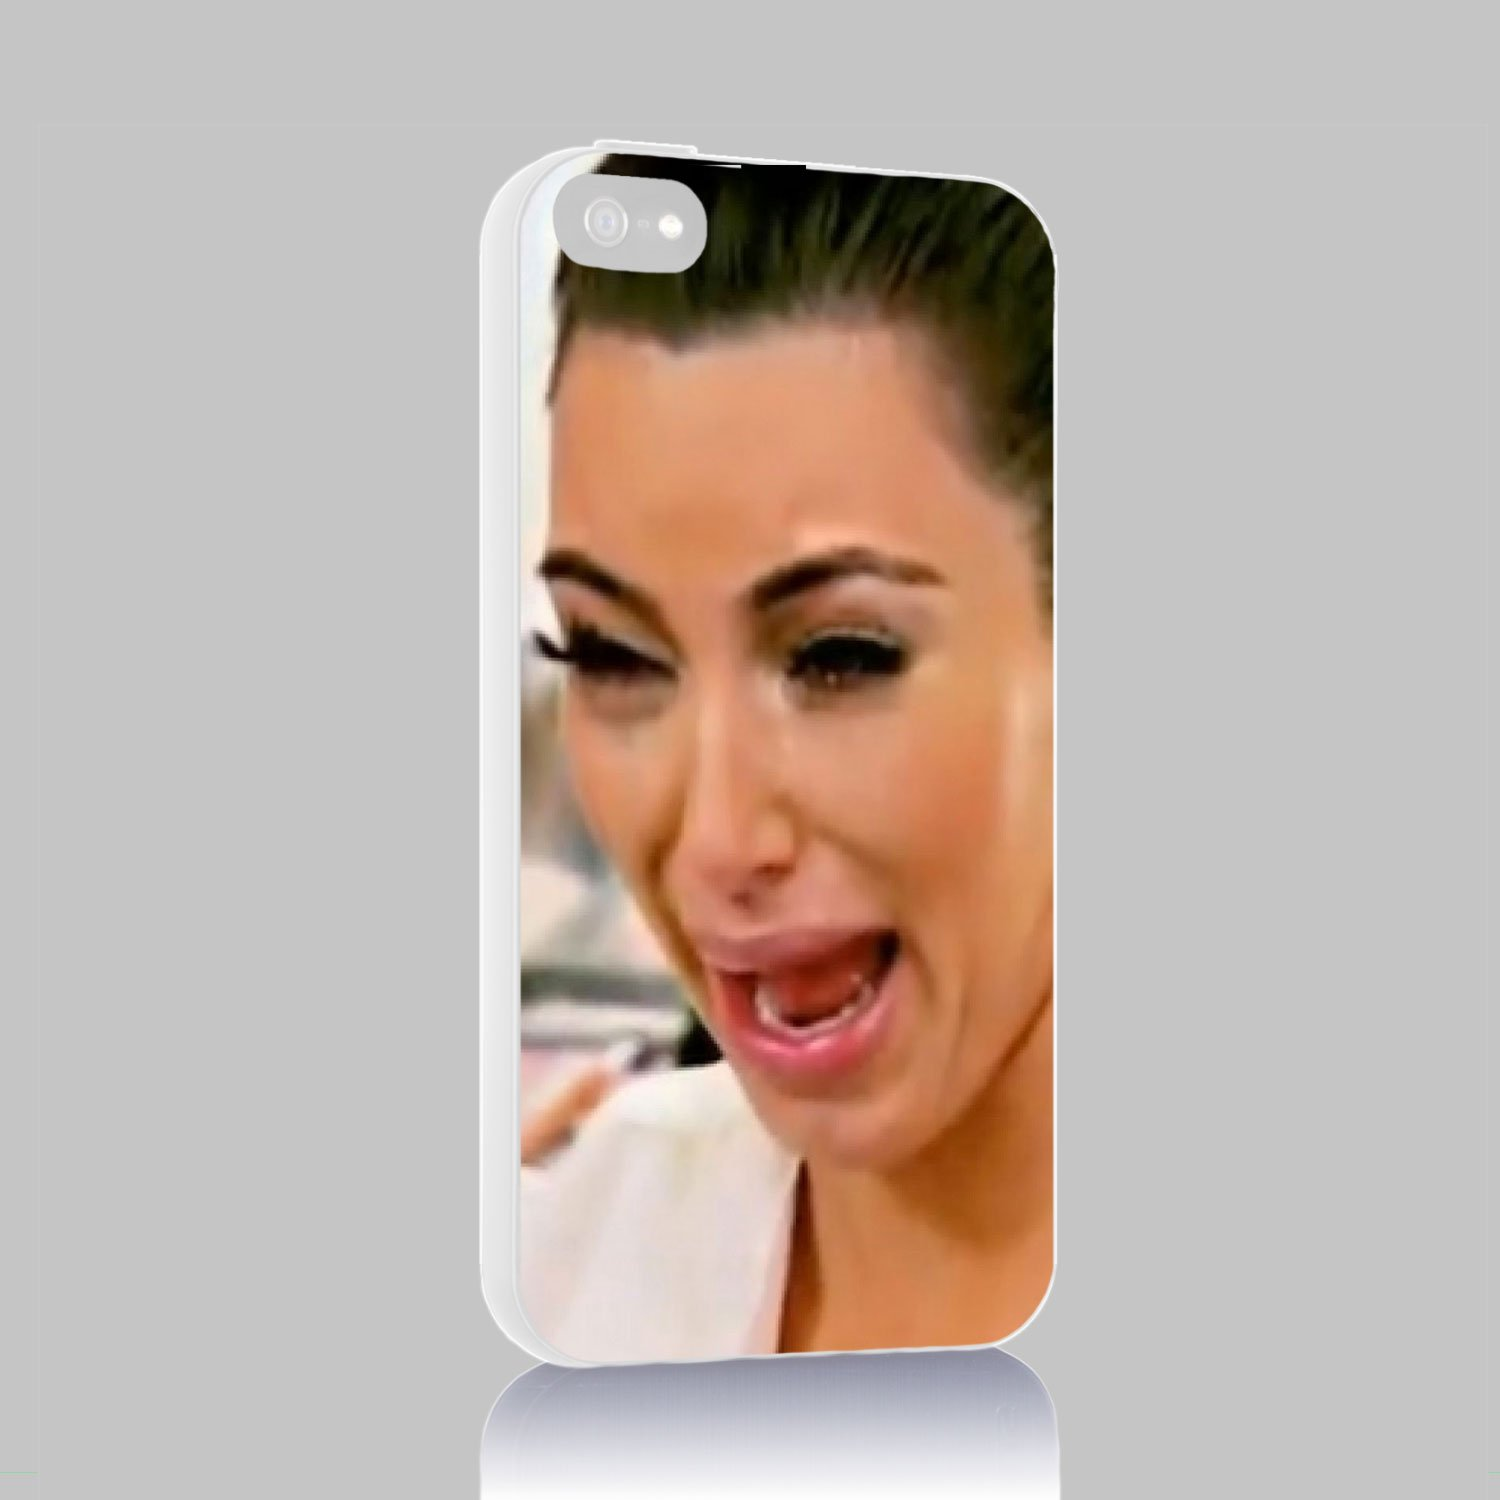 Kim Kardashian Crying for Iphone 4/4s 5 5c 6 6plus Case (iphone 4/4s white)